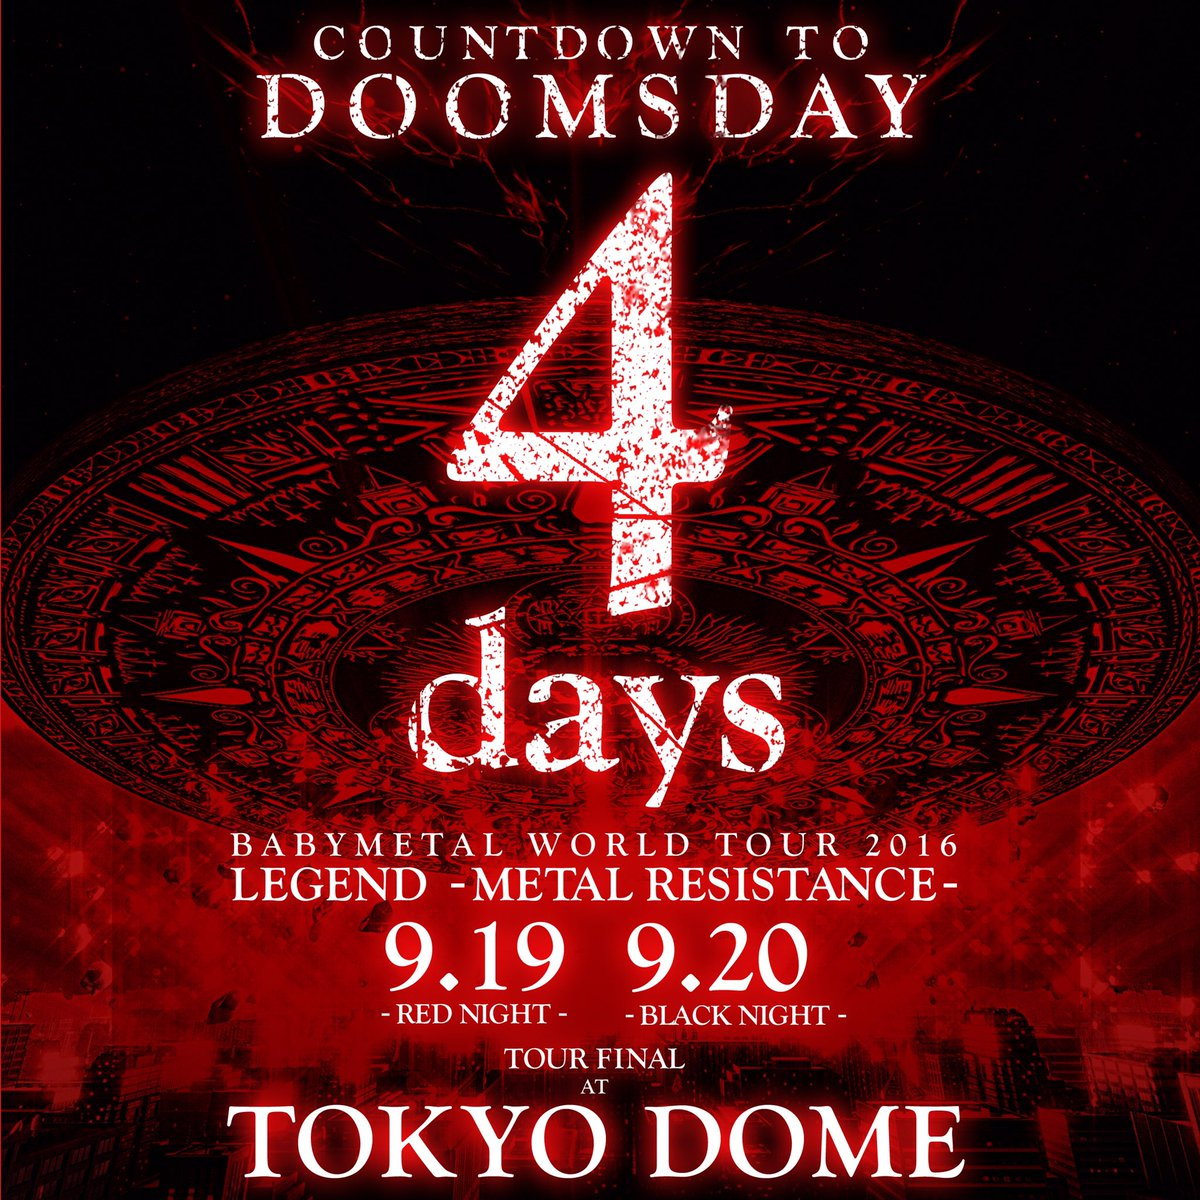 May the 4th be with you #BABYMETAL #TOKYODOME #東京ドーム #THEONE #DOOMSDAY https;//t.co/HGORXzJMnE